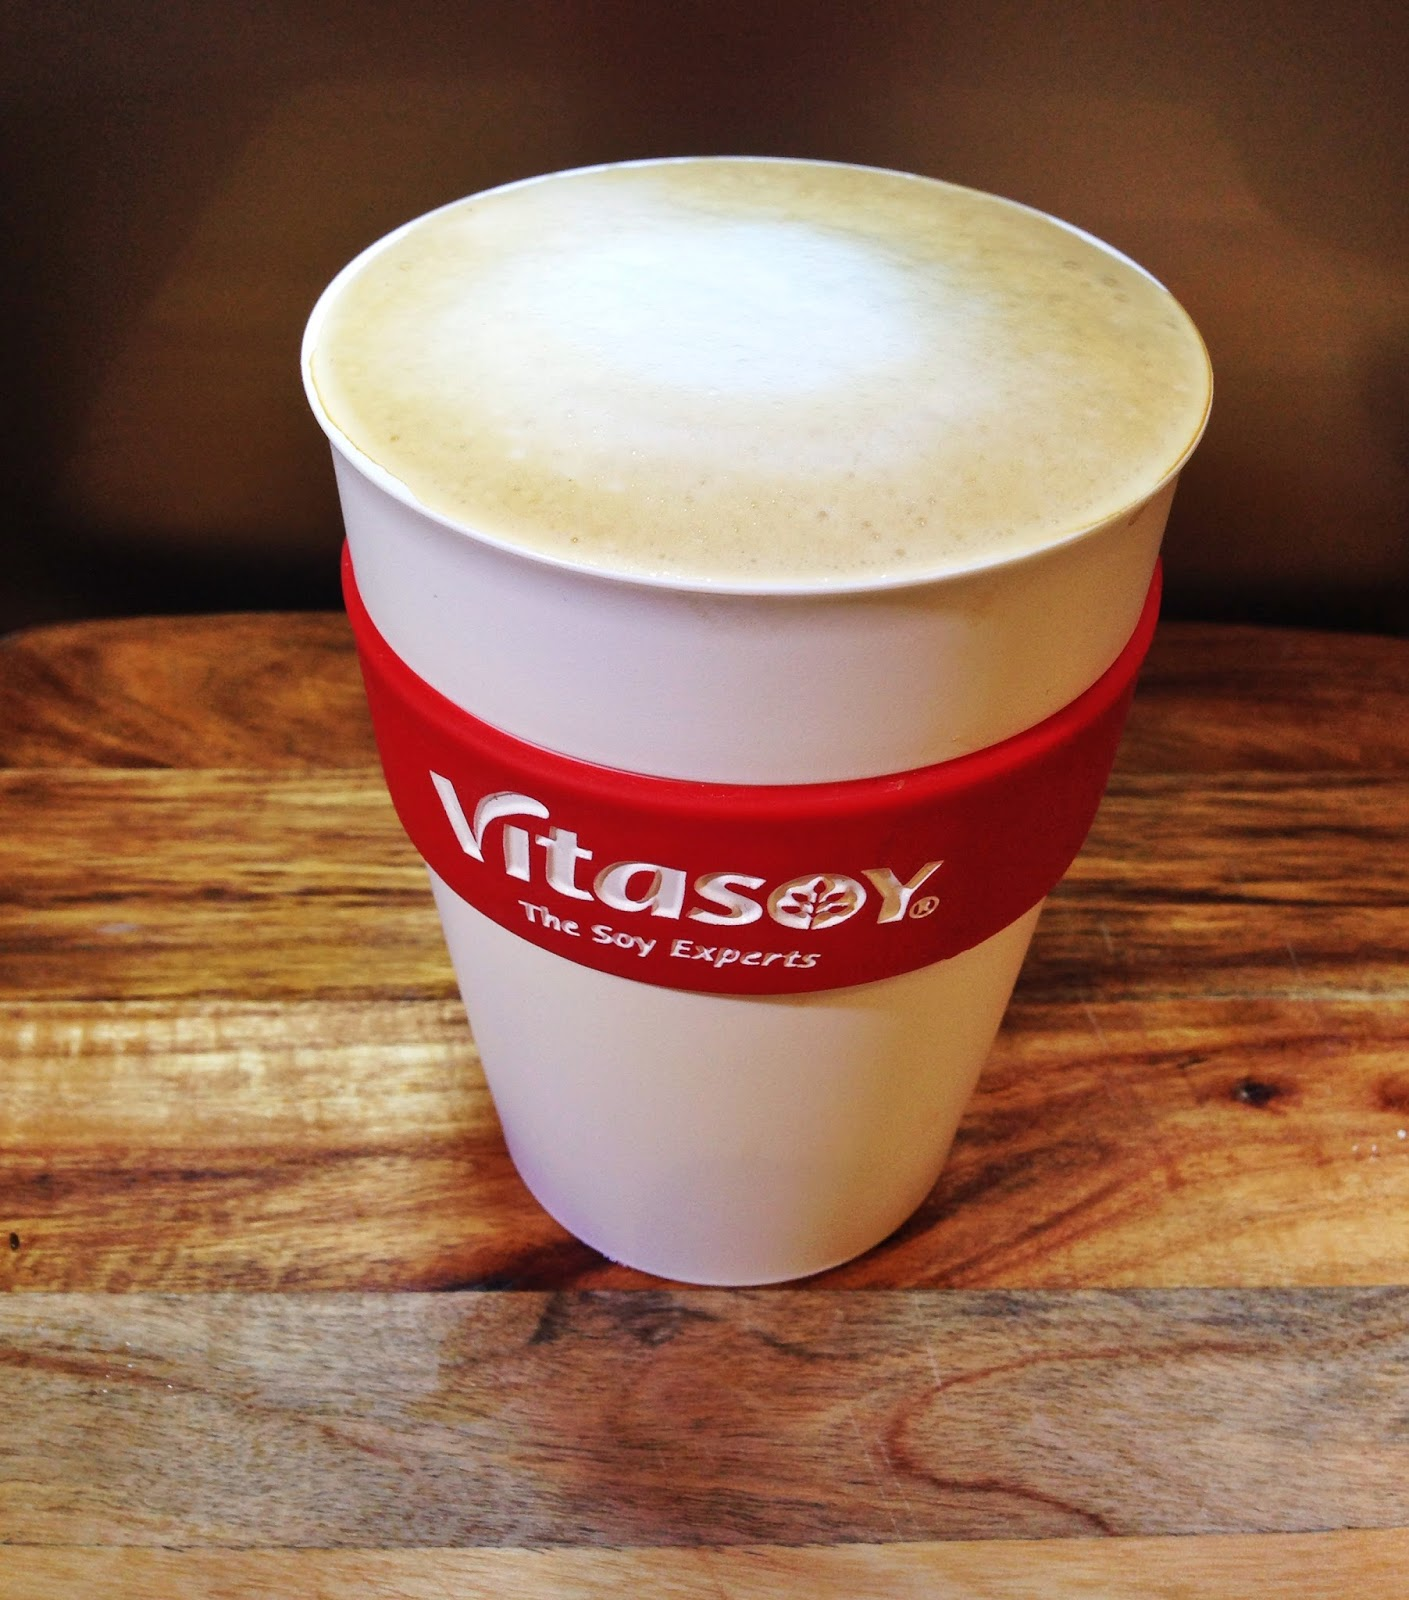 Vitasoy, soymilk, organic, soybeans, vegetarian, gluten free, healthy, nutrition, win, giveaway, soy latte, coffee